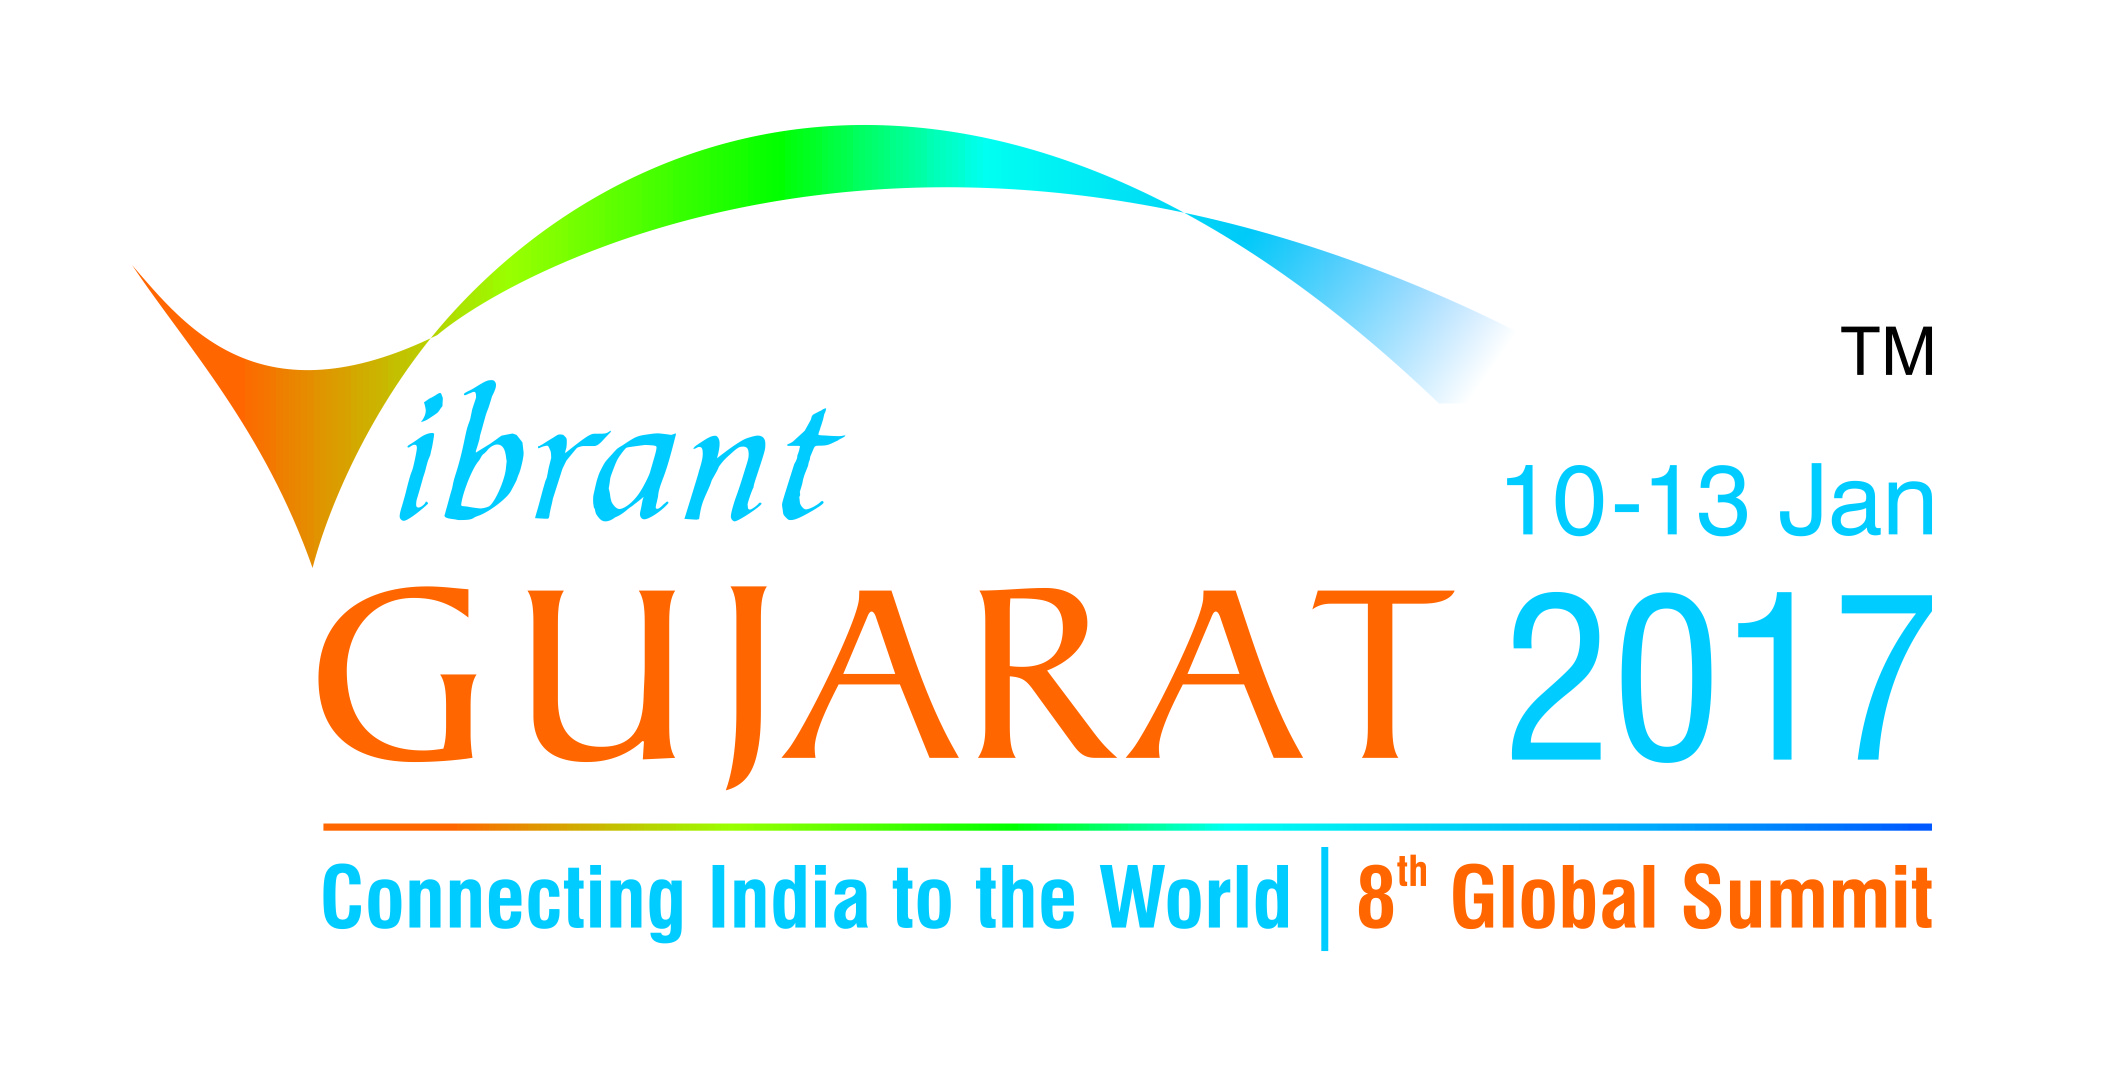 Vibrant Gujarat was a masterstroke in public relations, government relations and reputation management of the state of gujarat by the erstwhile chief minister and the current prime minister of india narendra modi